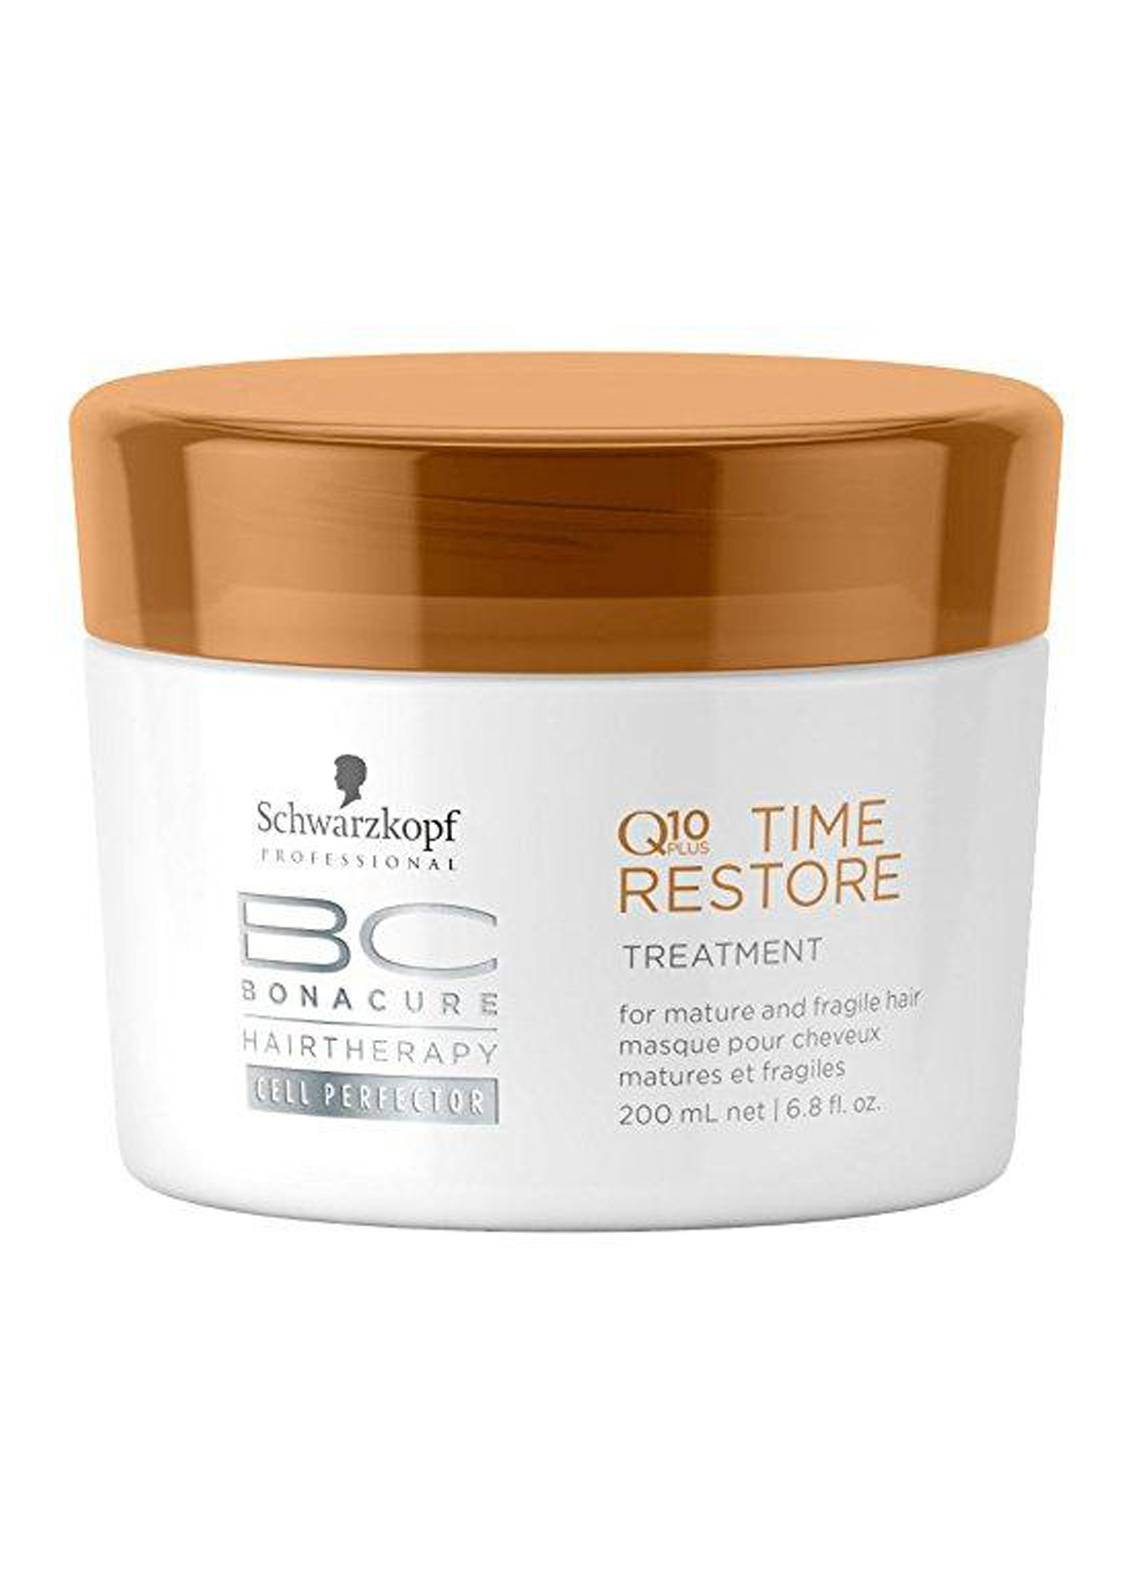 Schwarzkopf Bonacure Q10 Time Restore Treatment - 200 ml